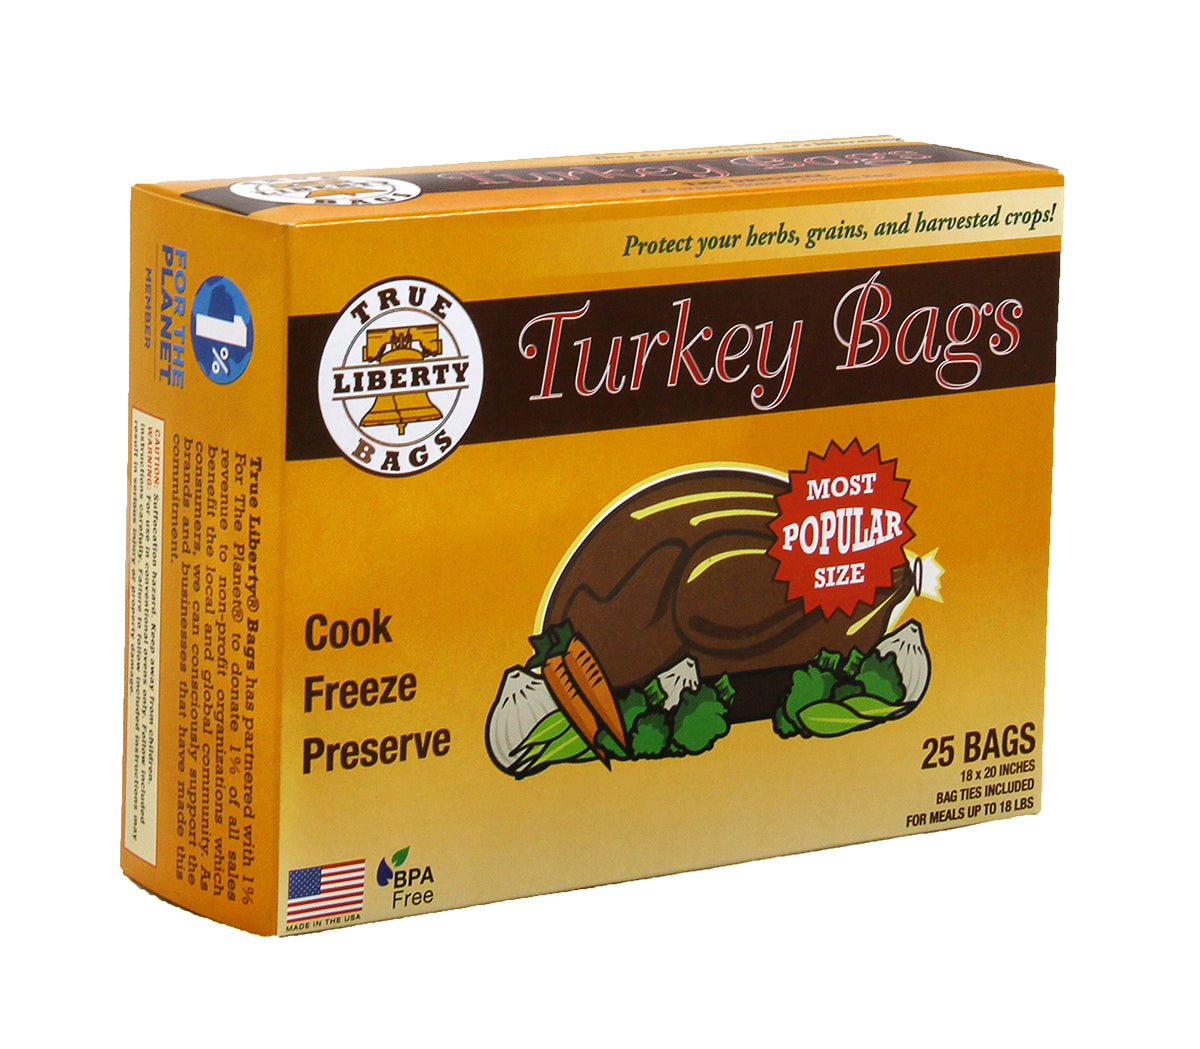 True Liberty Turkey Bags, pack of 25